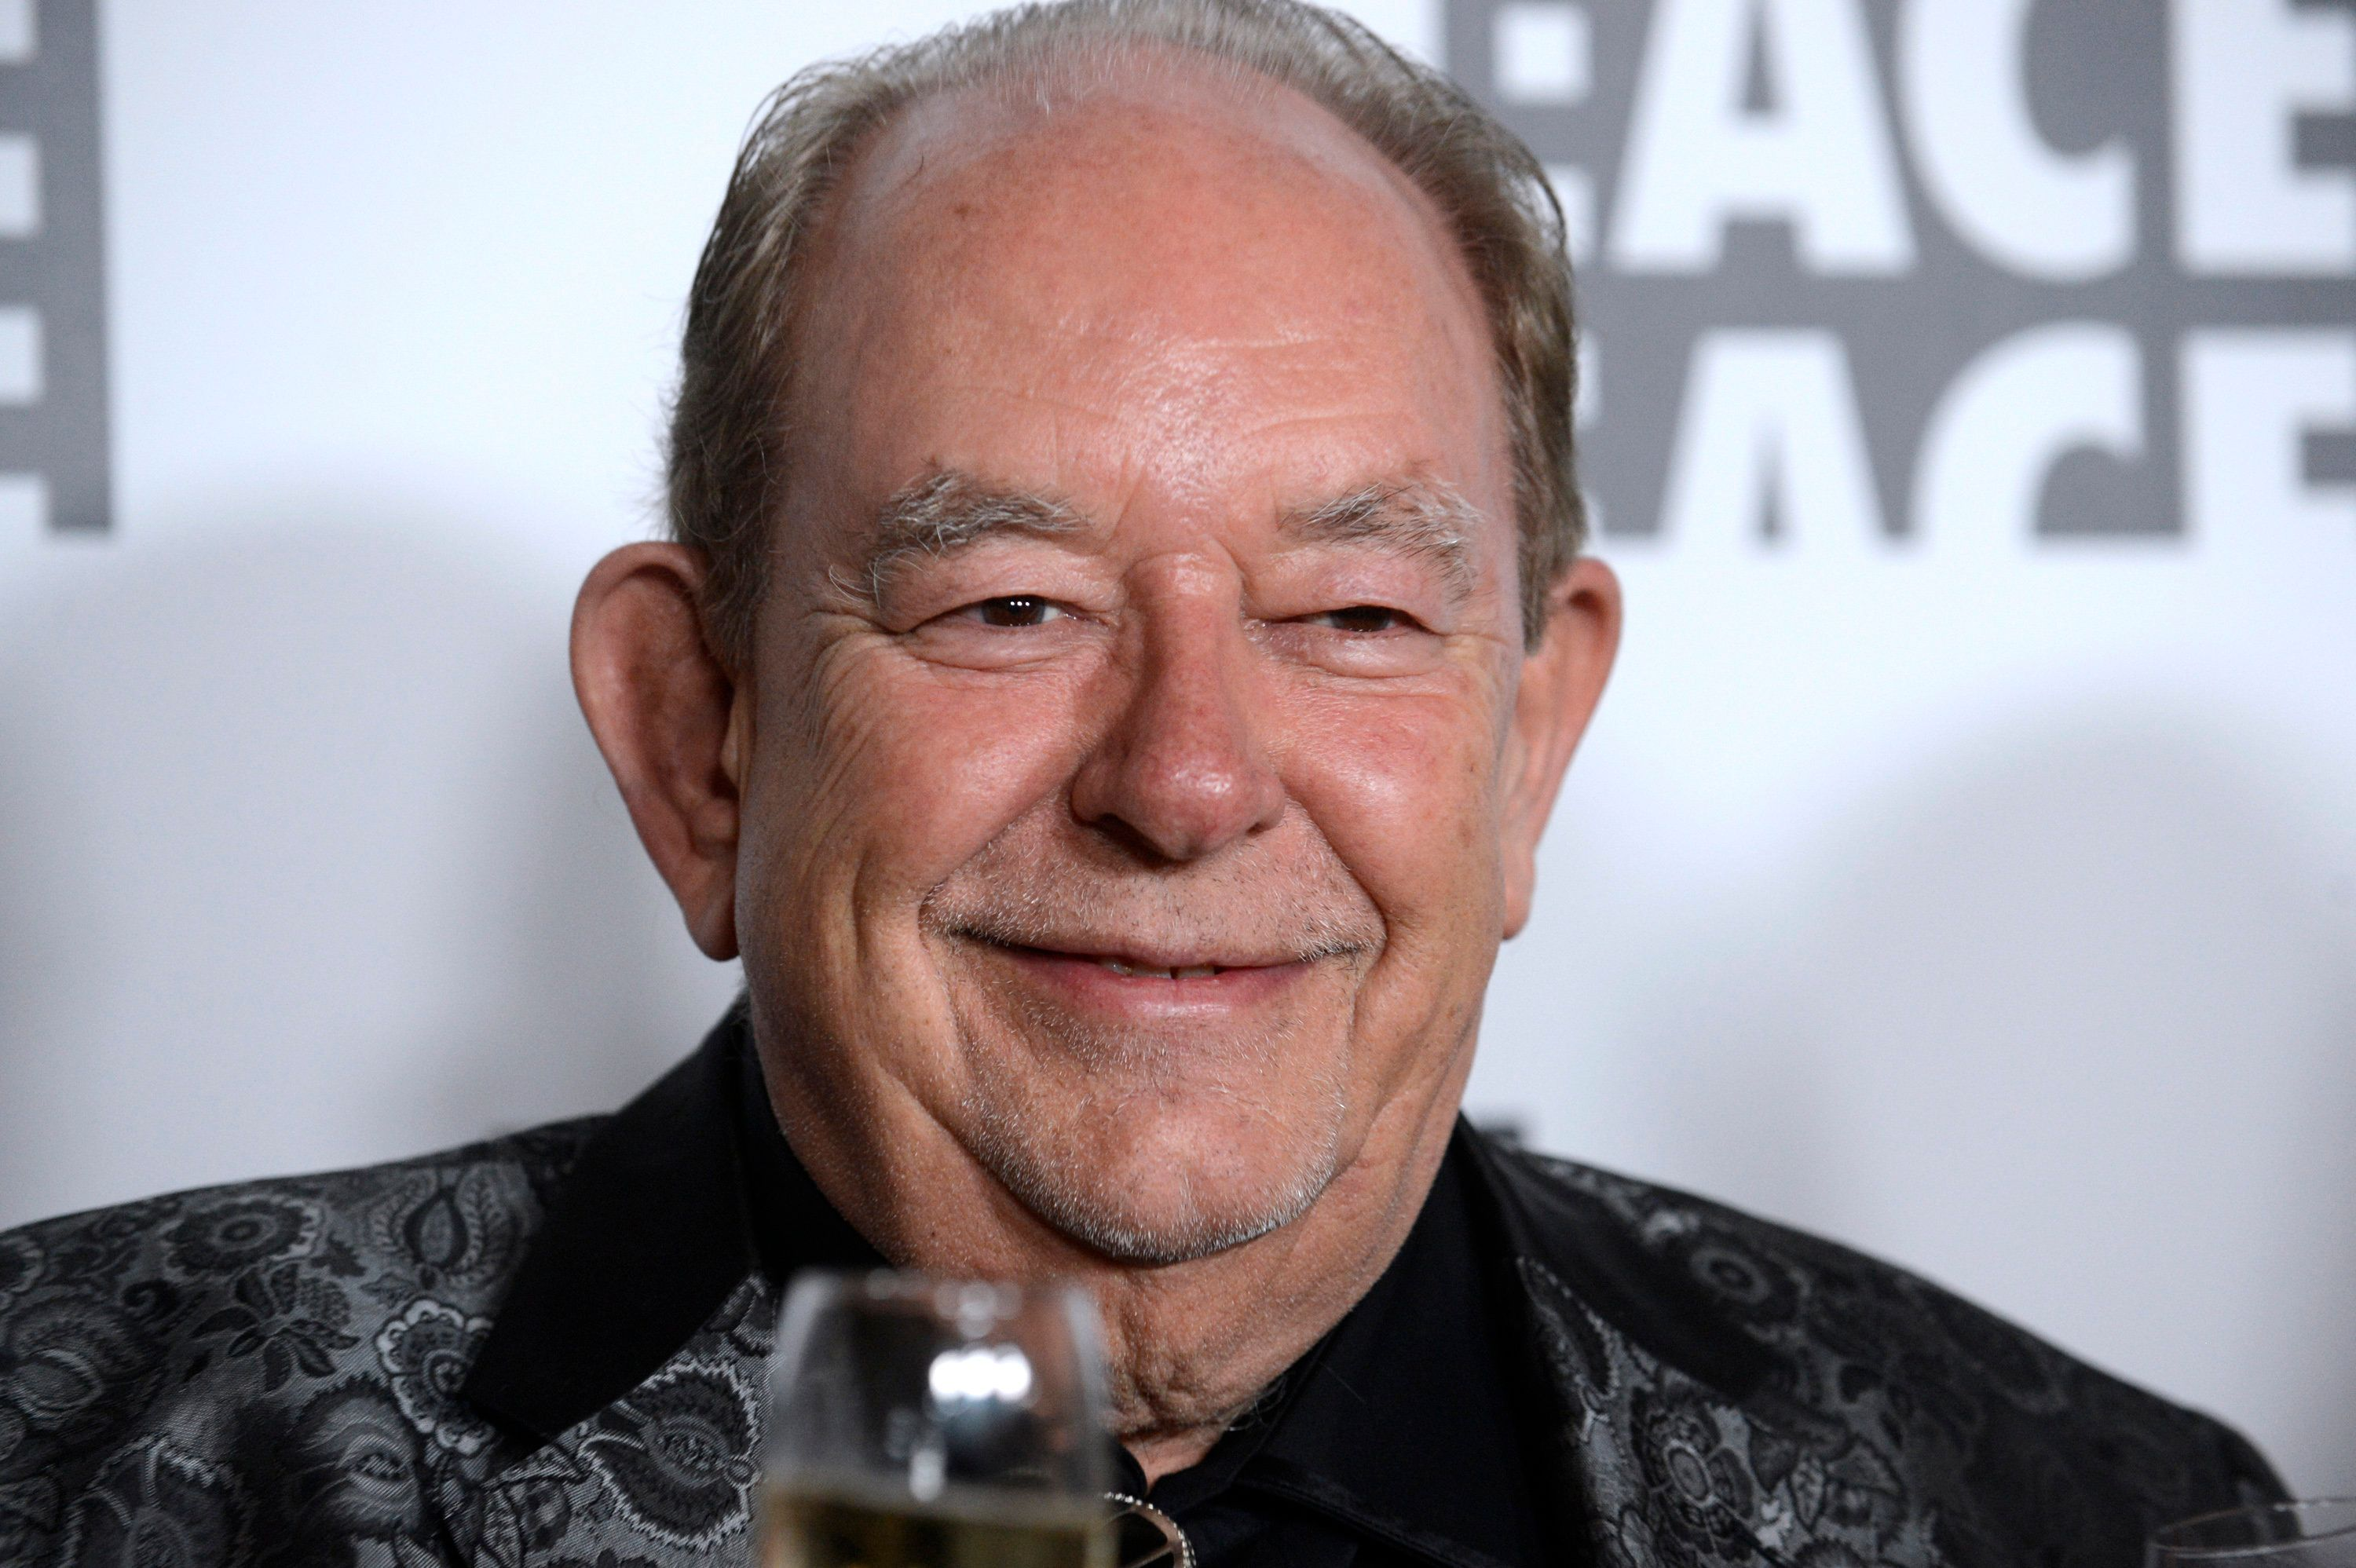 Television personality Robin Leach attends the 65th annual ACE Eddie Awards in Beverly Hills, California January 30, 2015. REUTERS/Phil McCarten (UNITED STATES - Tags: ENTERTAINMENT HEADSHOT)